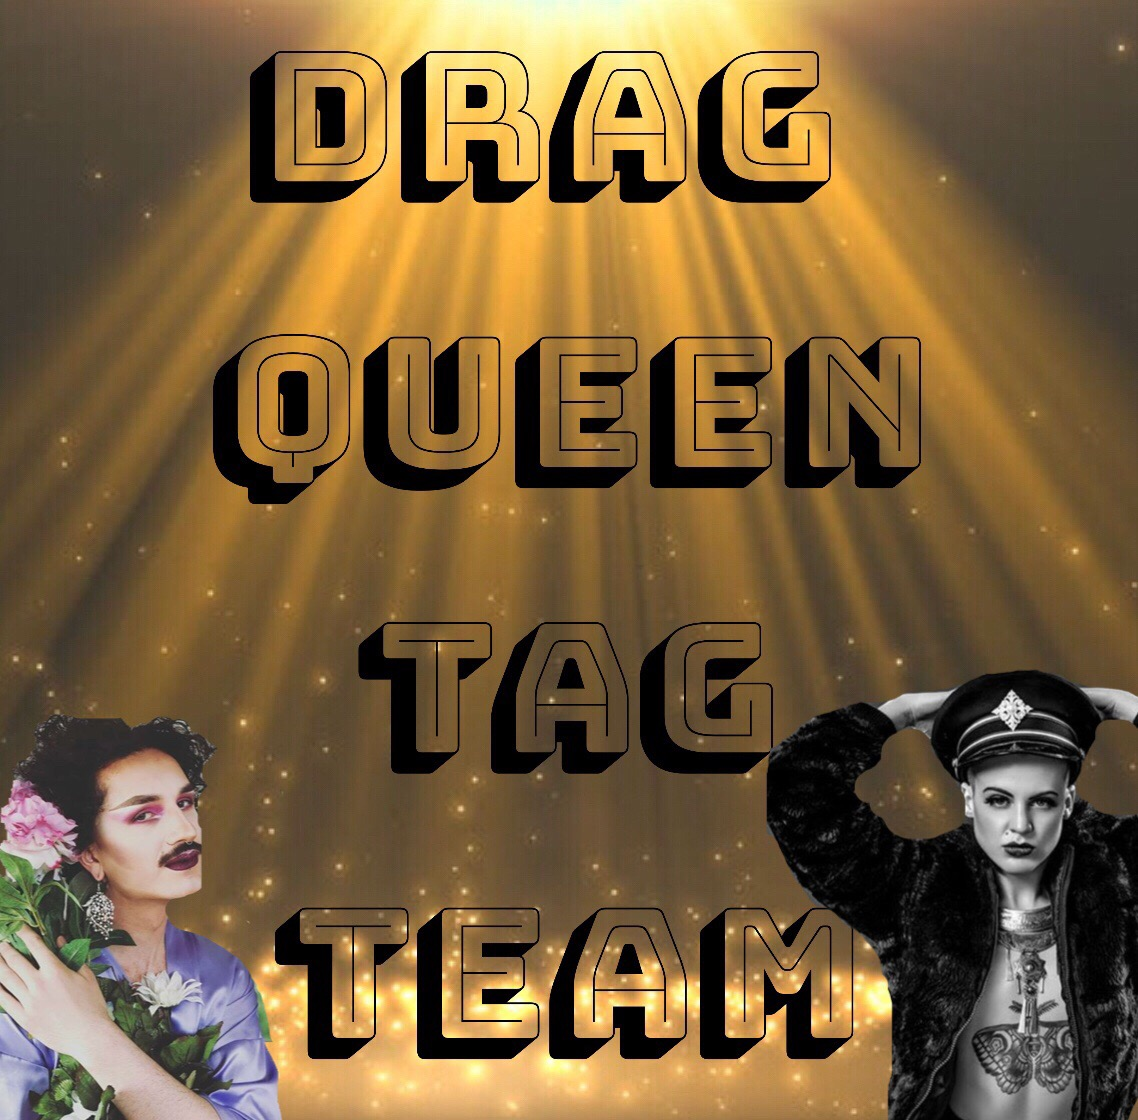 """#DQTT Drag Queen Tag Team is BACK!  Hosted by Pepper Pepper and DJ Cabiria Jones with special guest performers  Kel Dae and  Alice Johnson   August 14th  6pm Doors  7pm Show ALL AGES FREE  Drag Queen Tag Team is a non-stop improvised lip-synch performance where 3 performers go all out. It's a space where the LIVE moment is treasured over the precious moment. It's a space where the audience participates by tagging out the queens to lip-synch for/with them, it's a space where the audience can """"complicate"""" the performance with special requests and $ donations. It's a queer de-structuring of a lip-synch with joy, rigor and fun."""